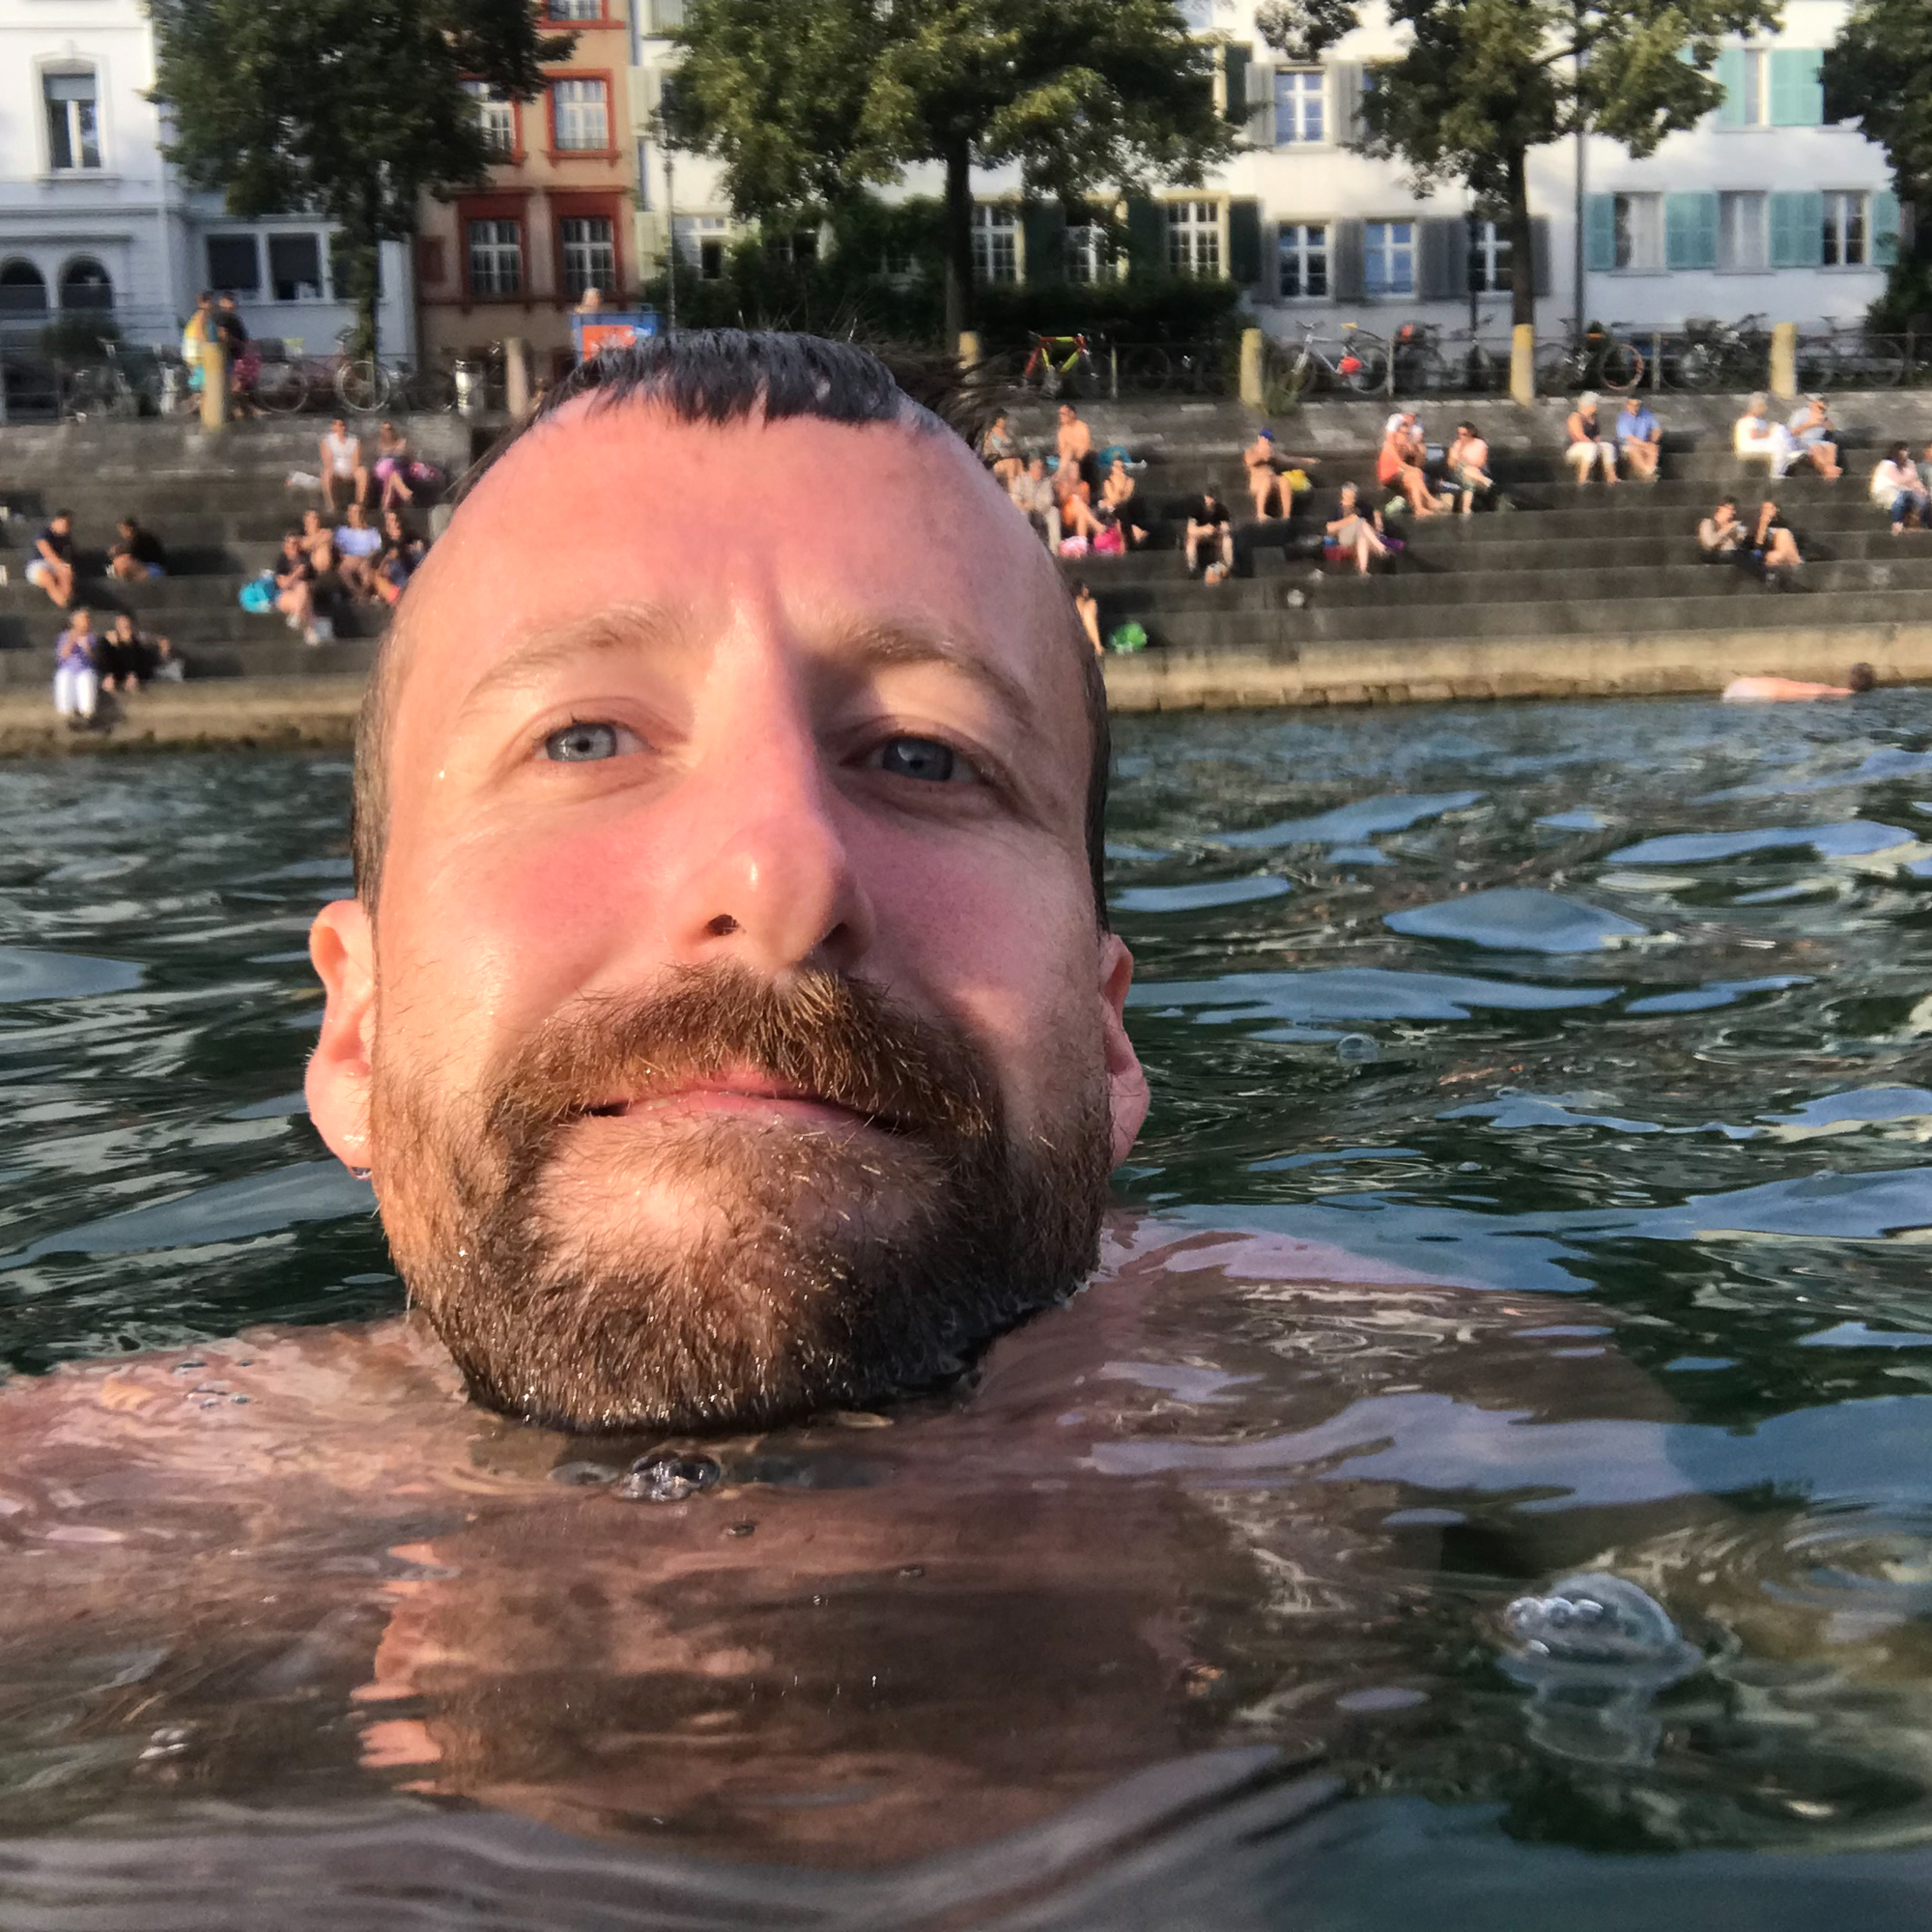 A photo of Ed Horsford swimming in the Rhine